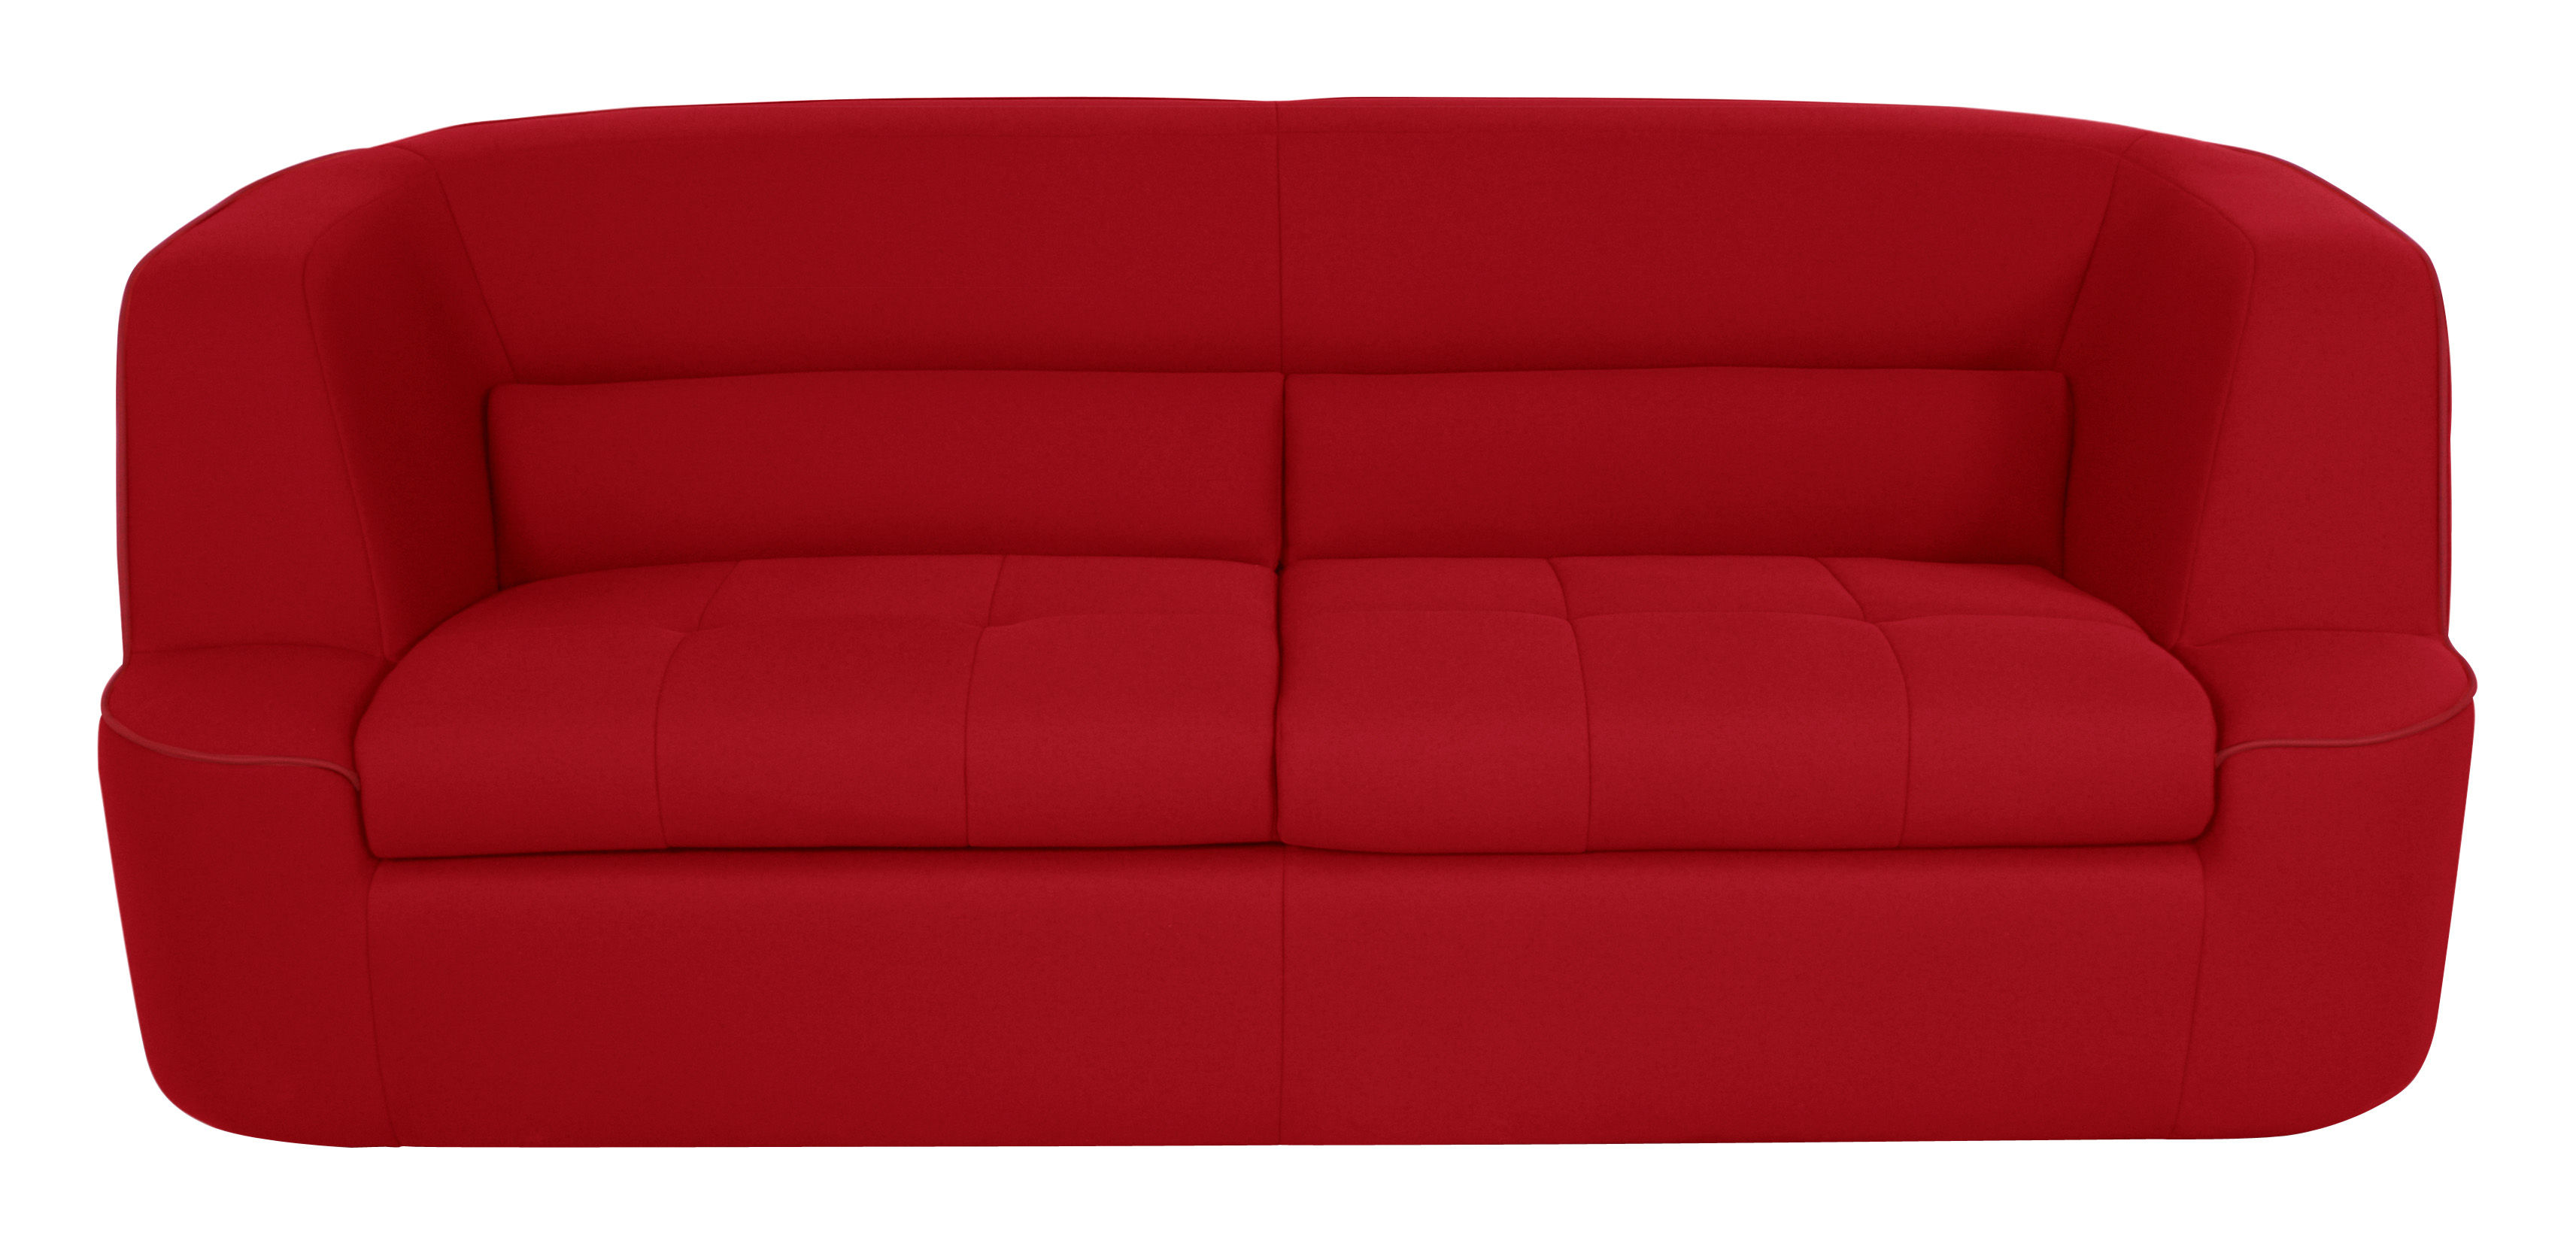 Canapé Convertible Chesty XL By Ora Ito Places L Cm Rouge - Canapé design rouge